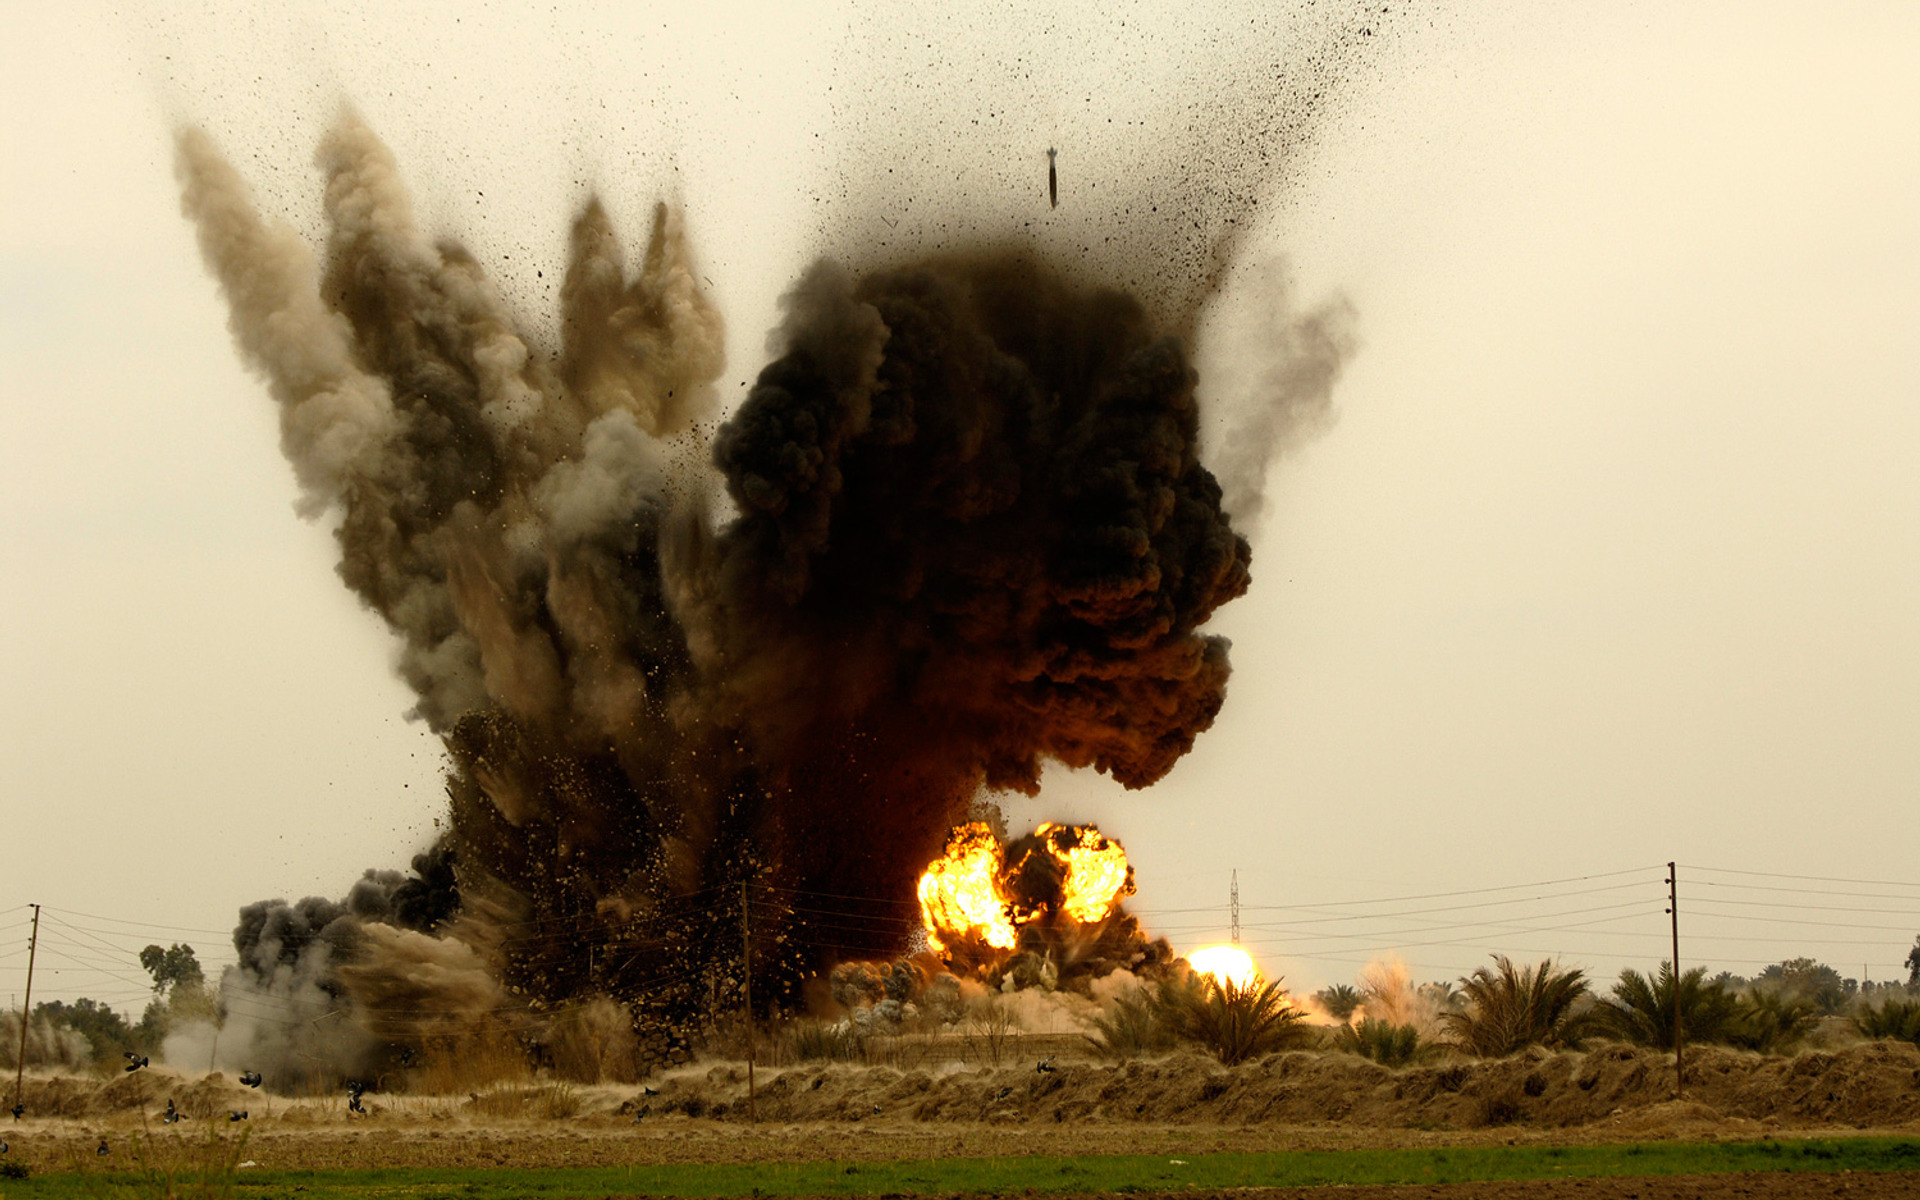 Explosion HD Wallpaper | Background Image | 1920x1200 | ID ...